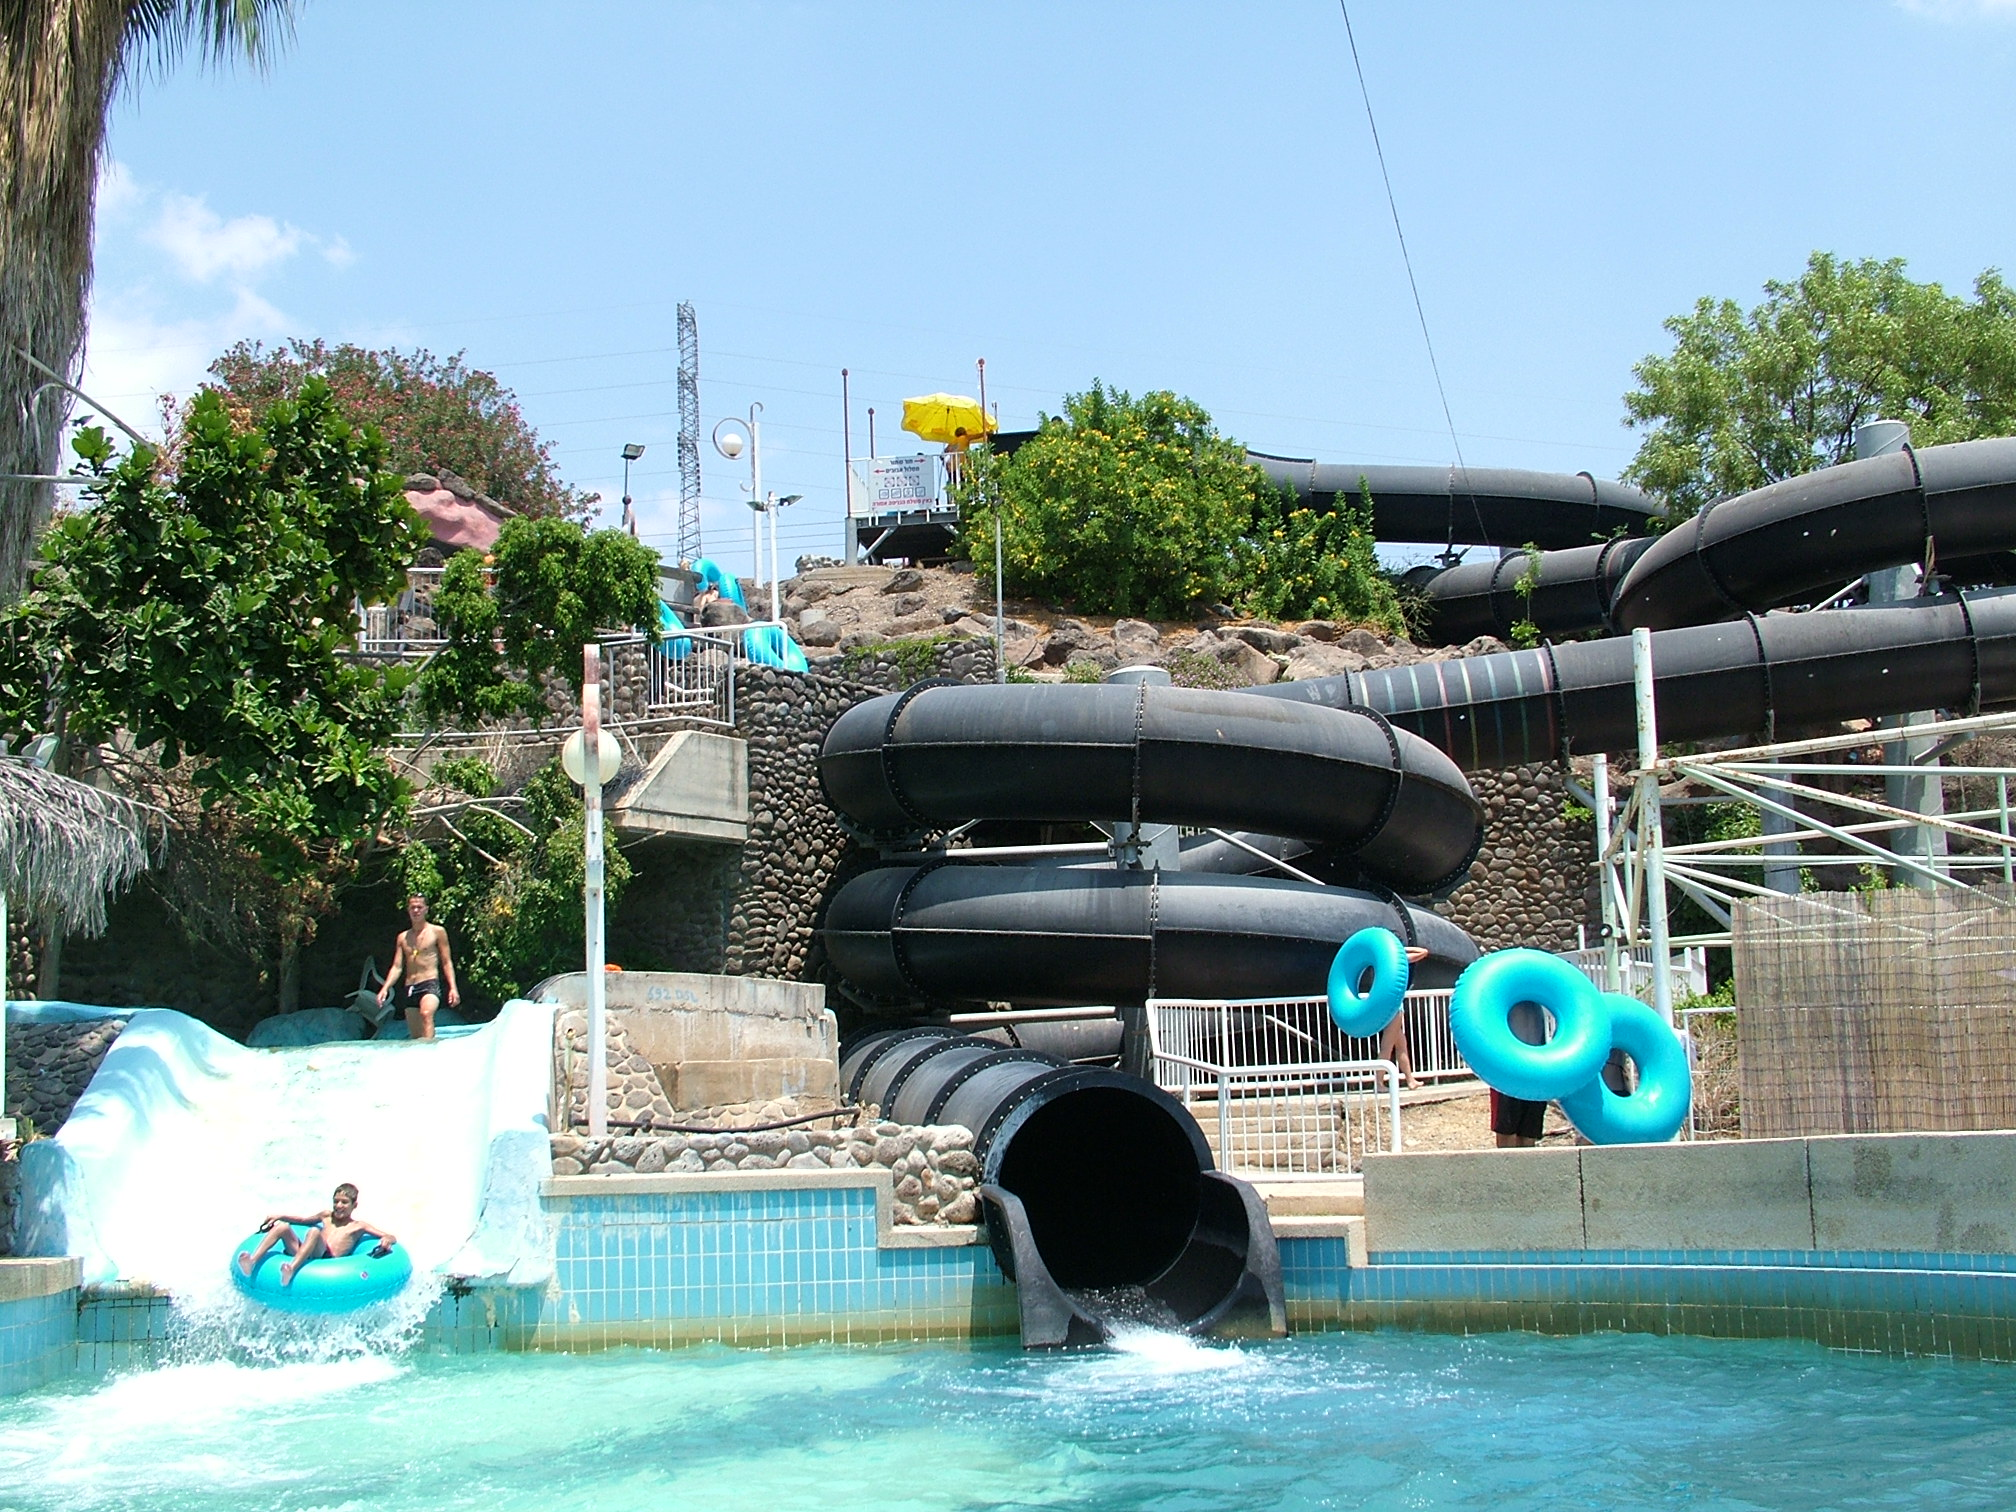 water park is next - photo #47